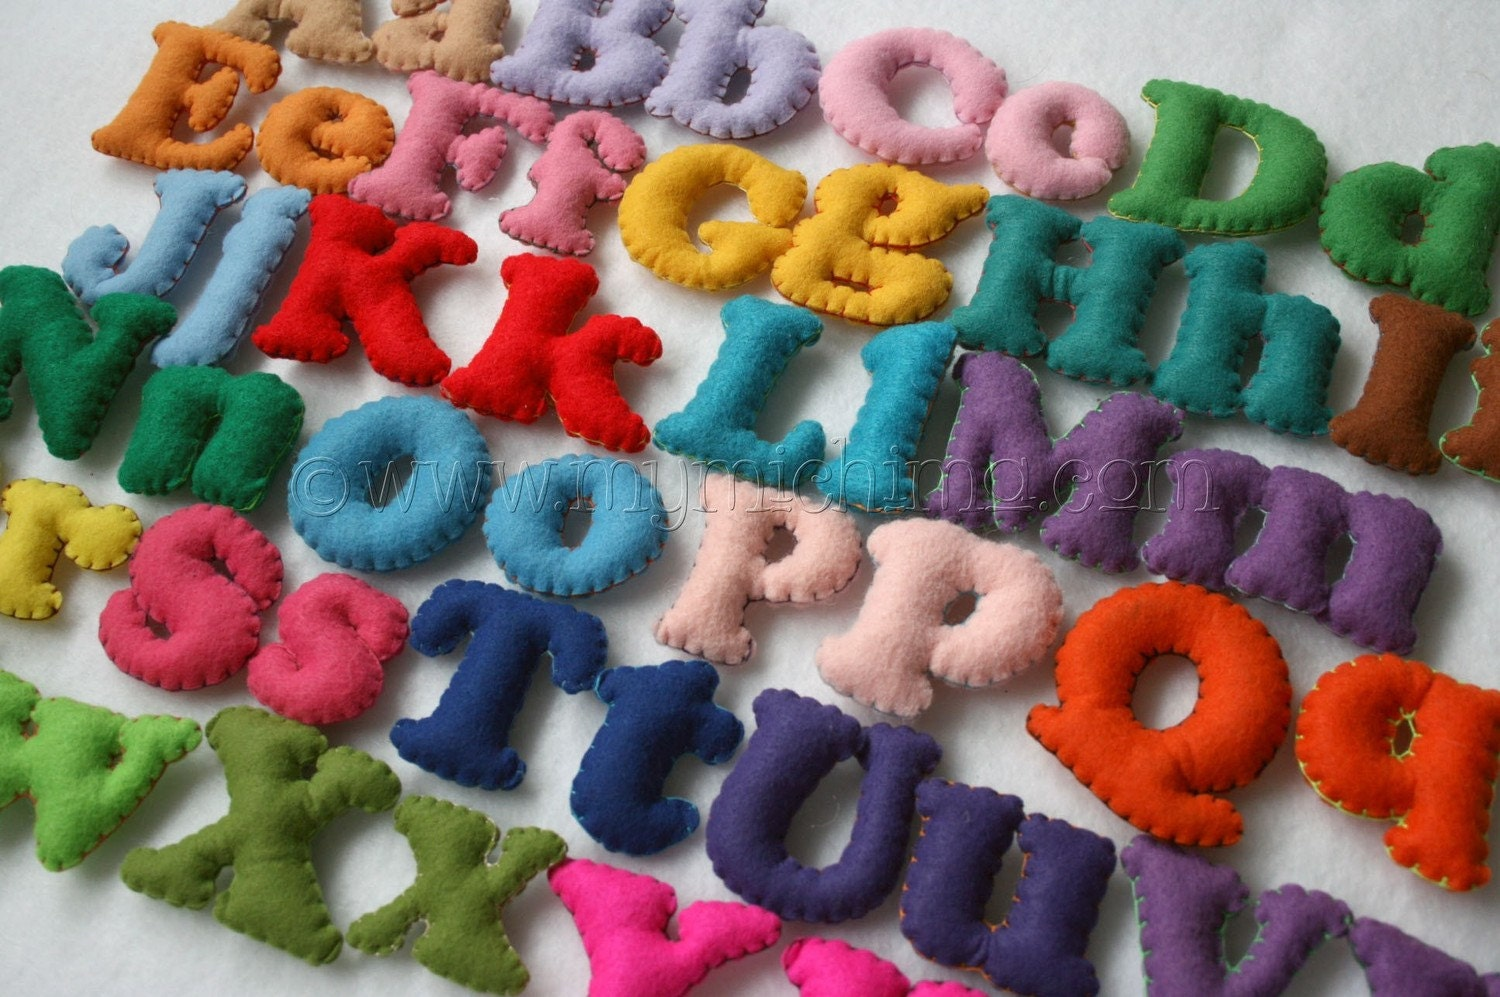 Stuffed Felt Alphabet Letter Set in a Drawstring Bag - Mixed Upper and Lower Case Set